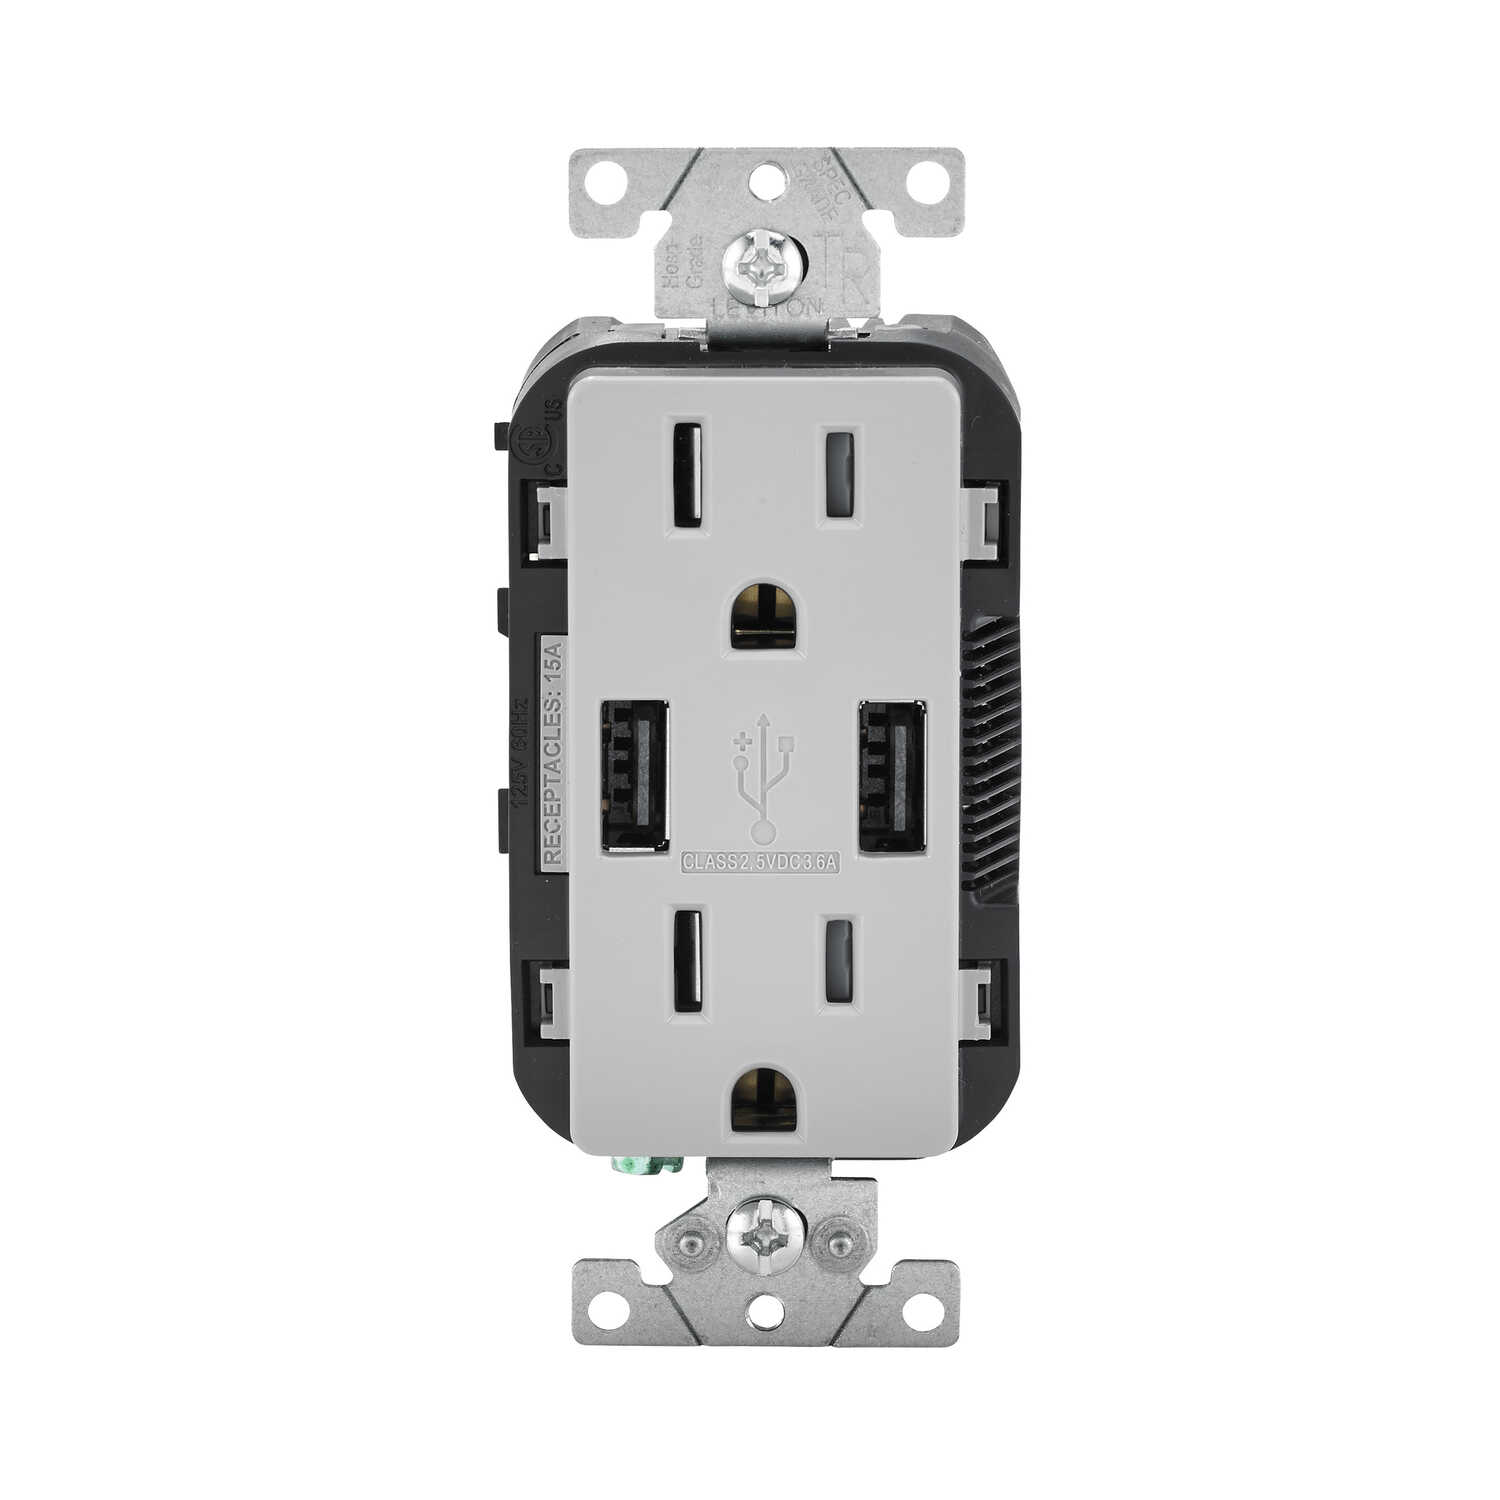 Leviton  Decora  15 amps 125 volt Gray  Outlet and USB Charger  5-15R  1 pk